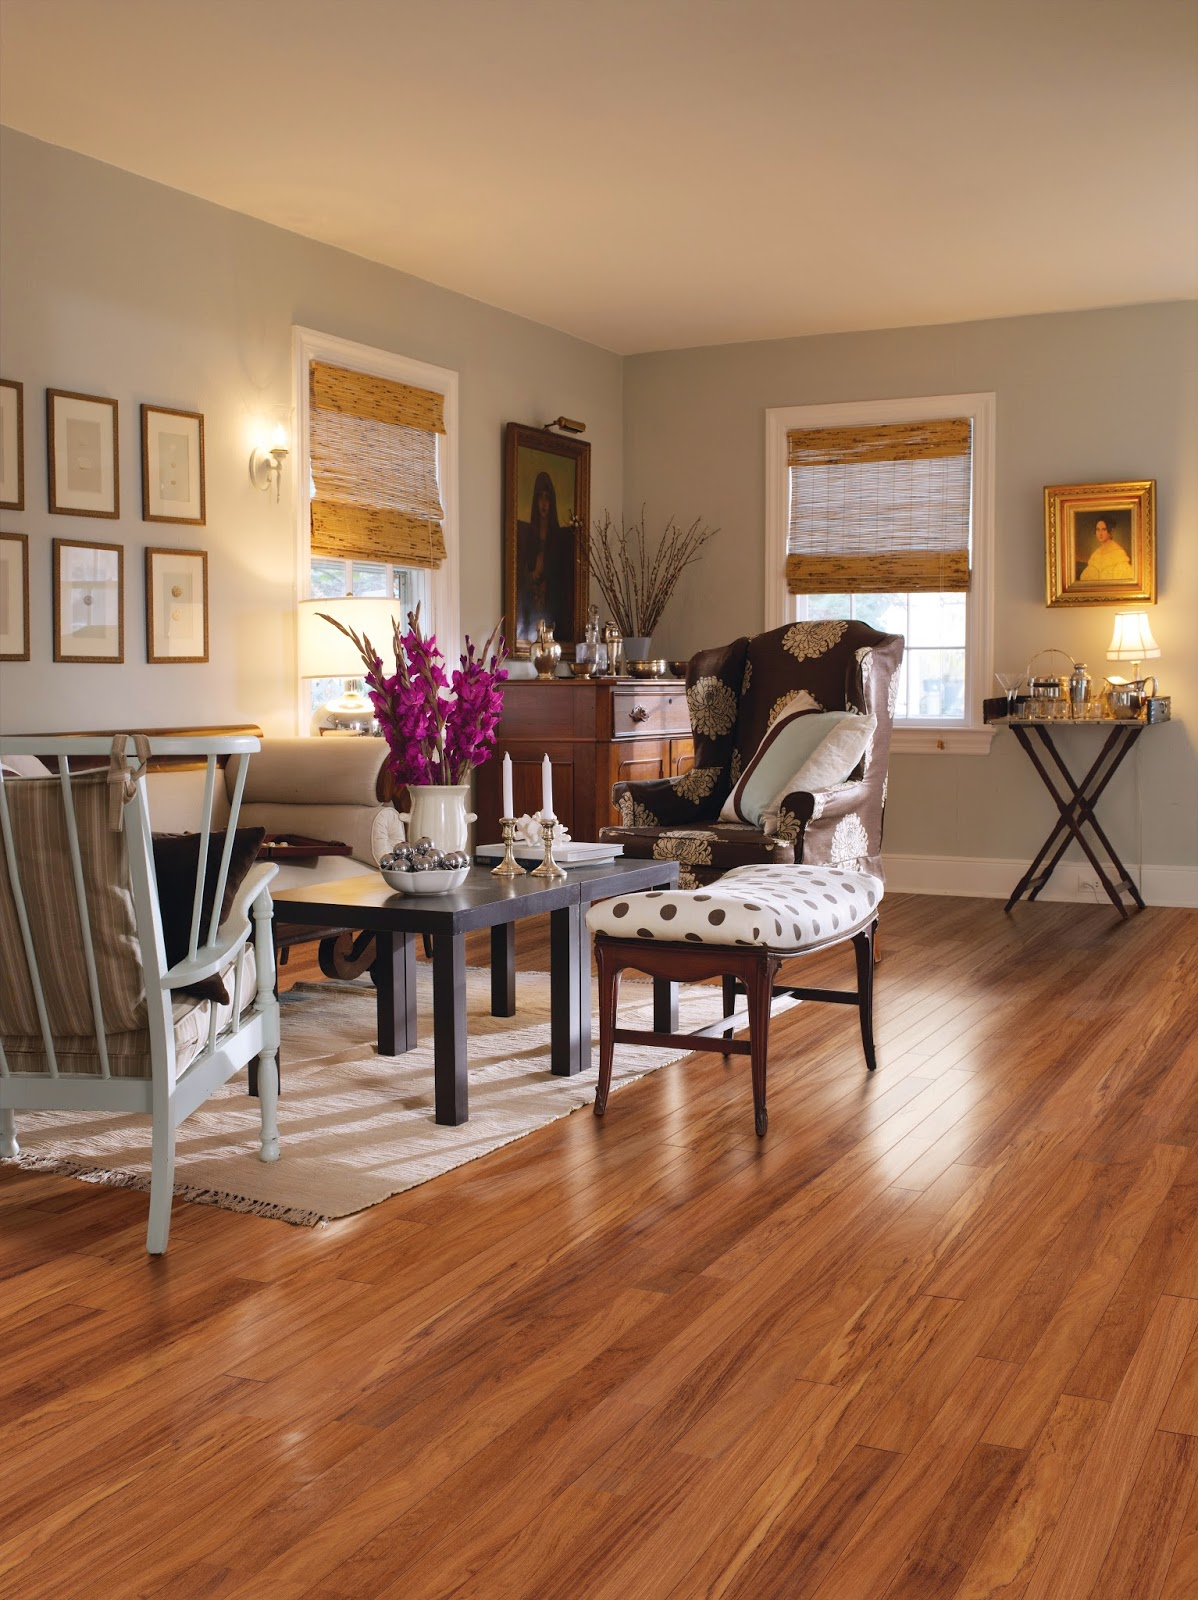 Indianapolis flooring store indianapolis hardwood flooring store kermans has tips to keep your hardwood looking beautiful dailygadgetfo Image collections